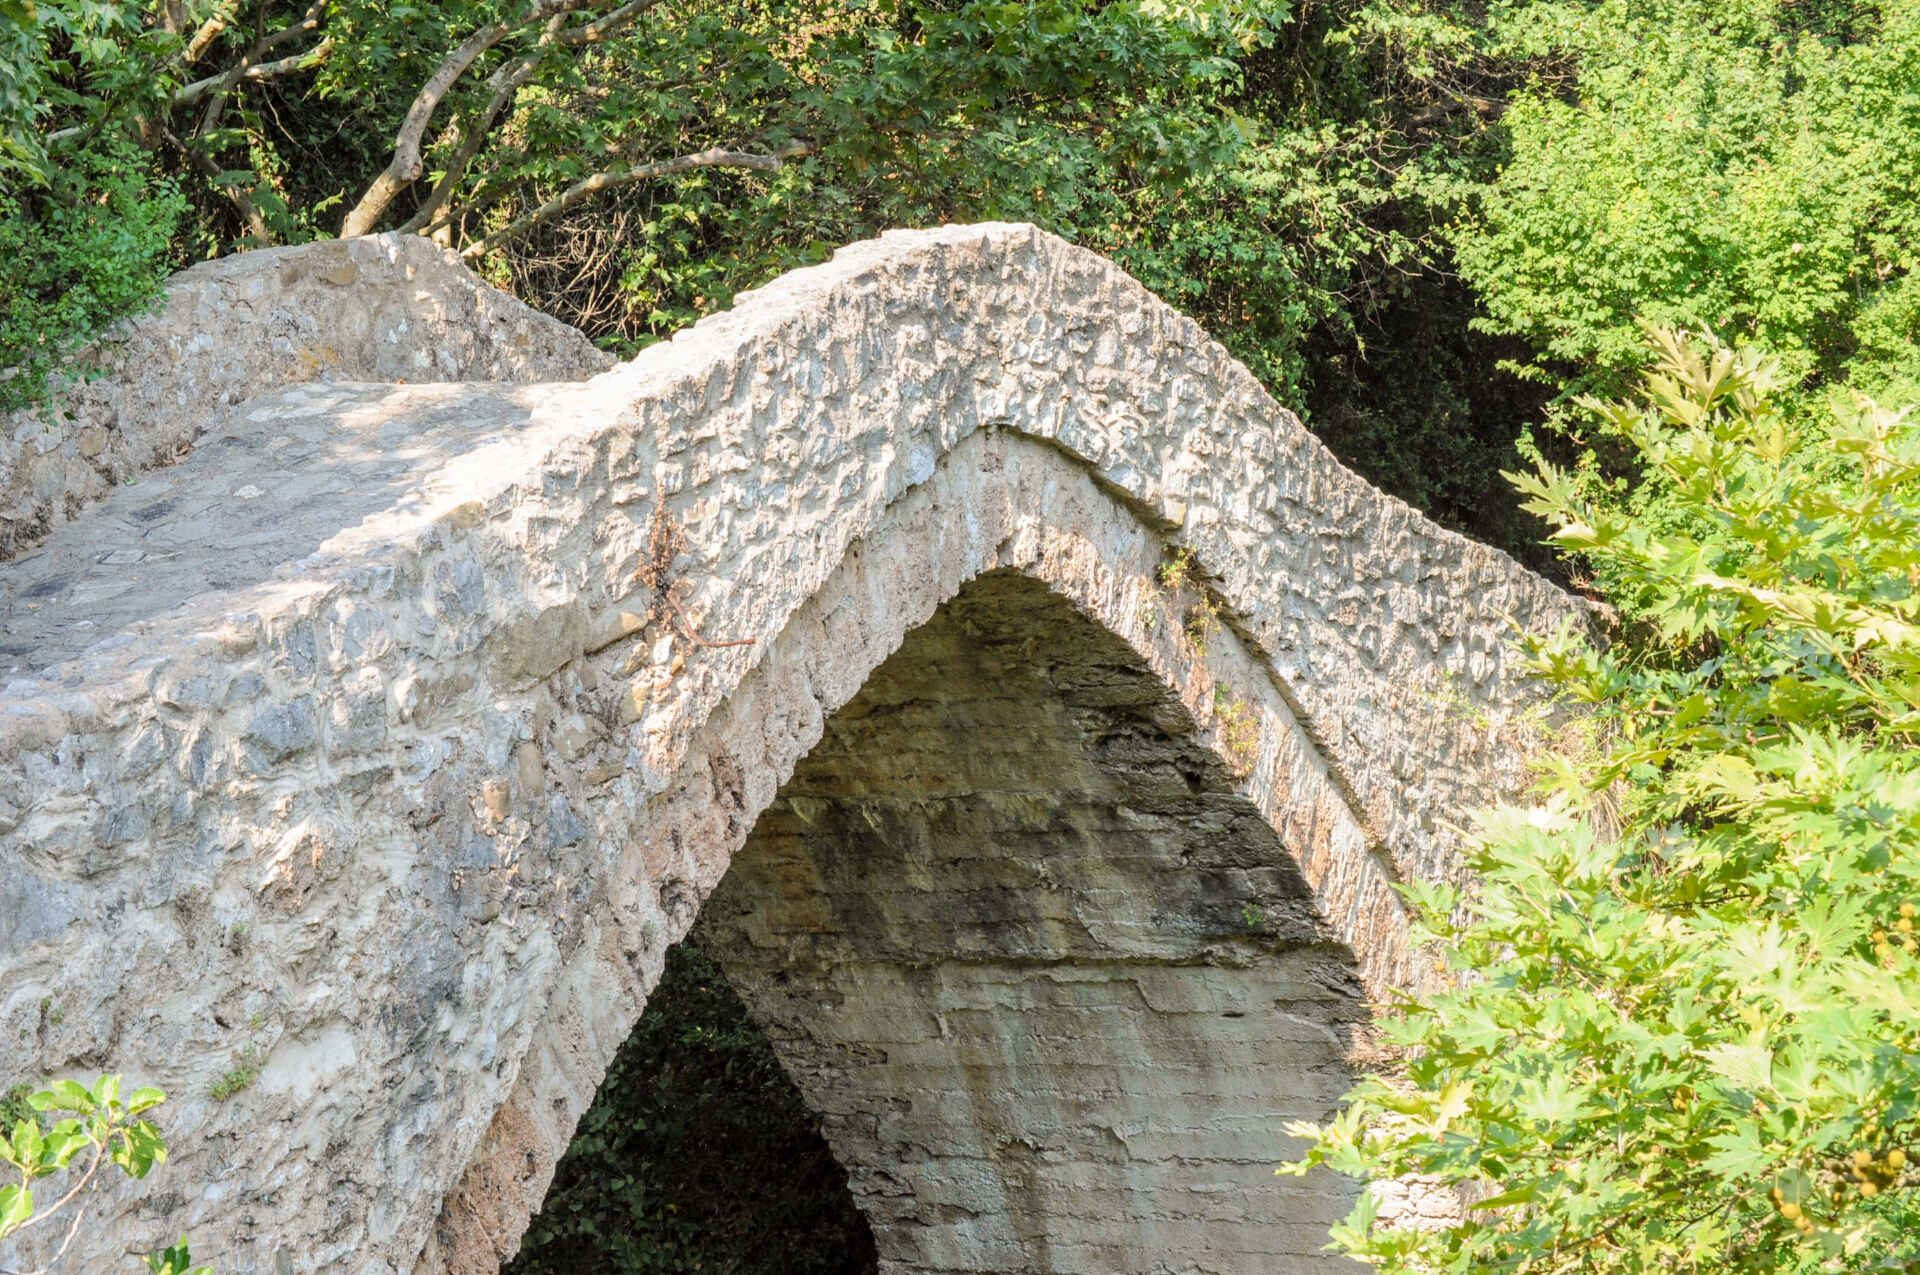 Bridge close to Karytaina in Arcadia, Peloponnese.